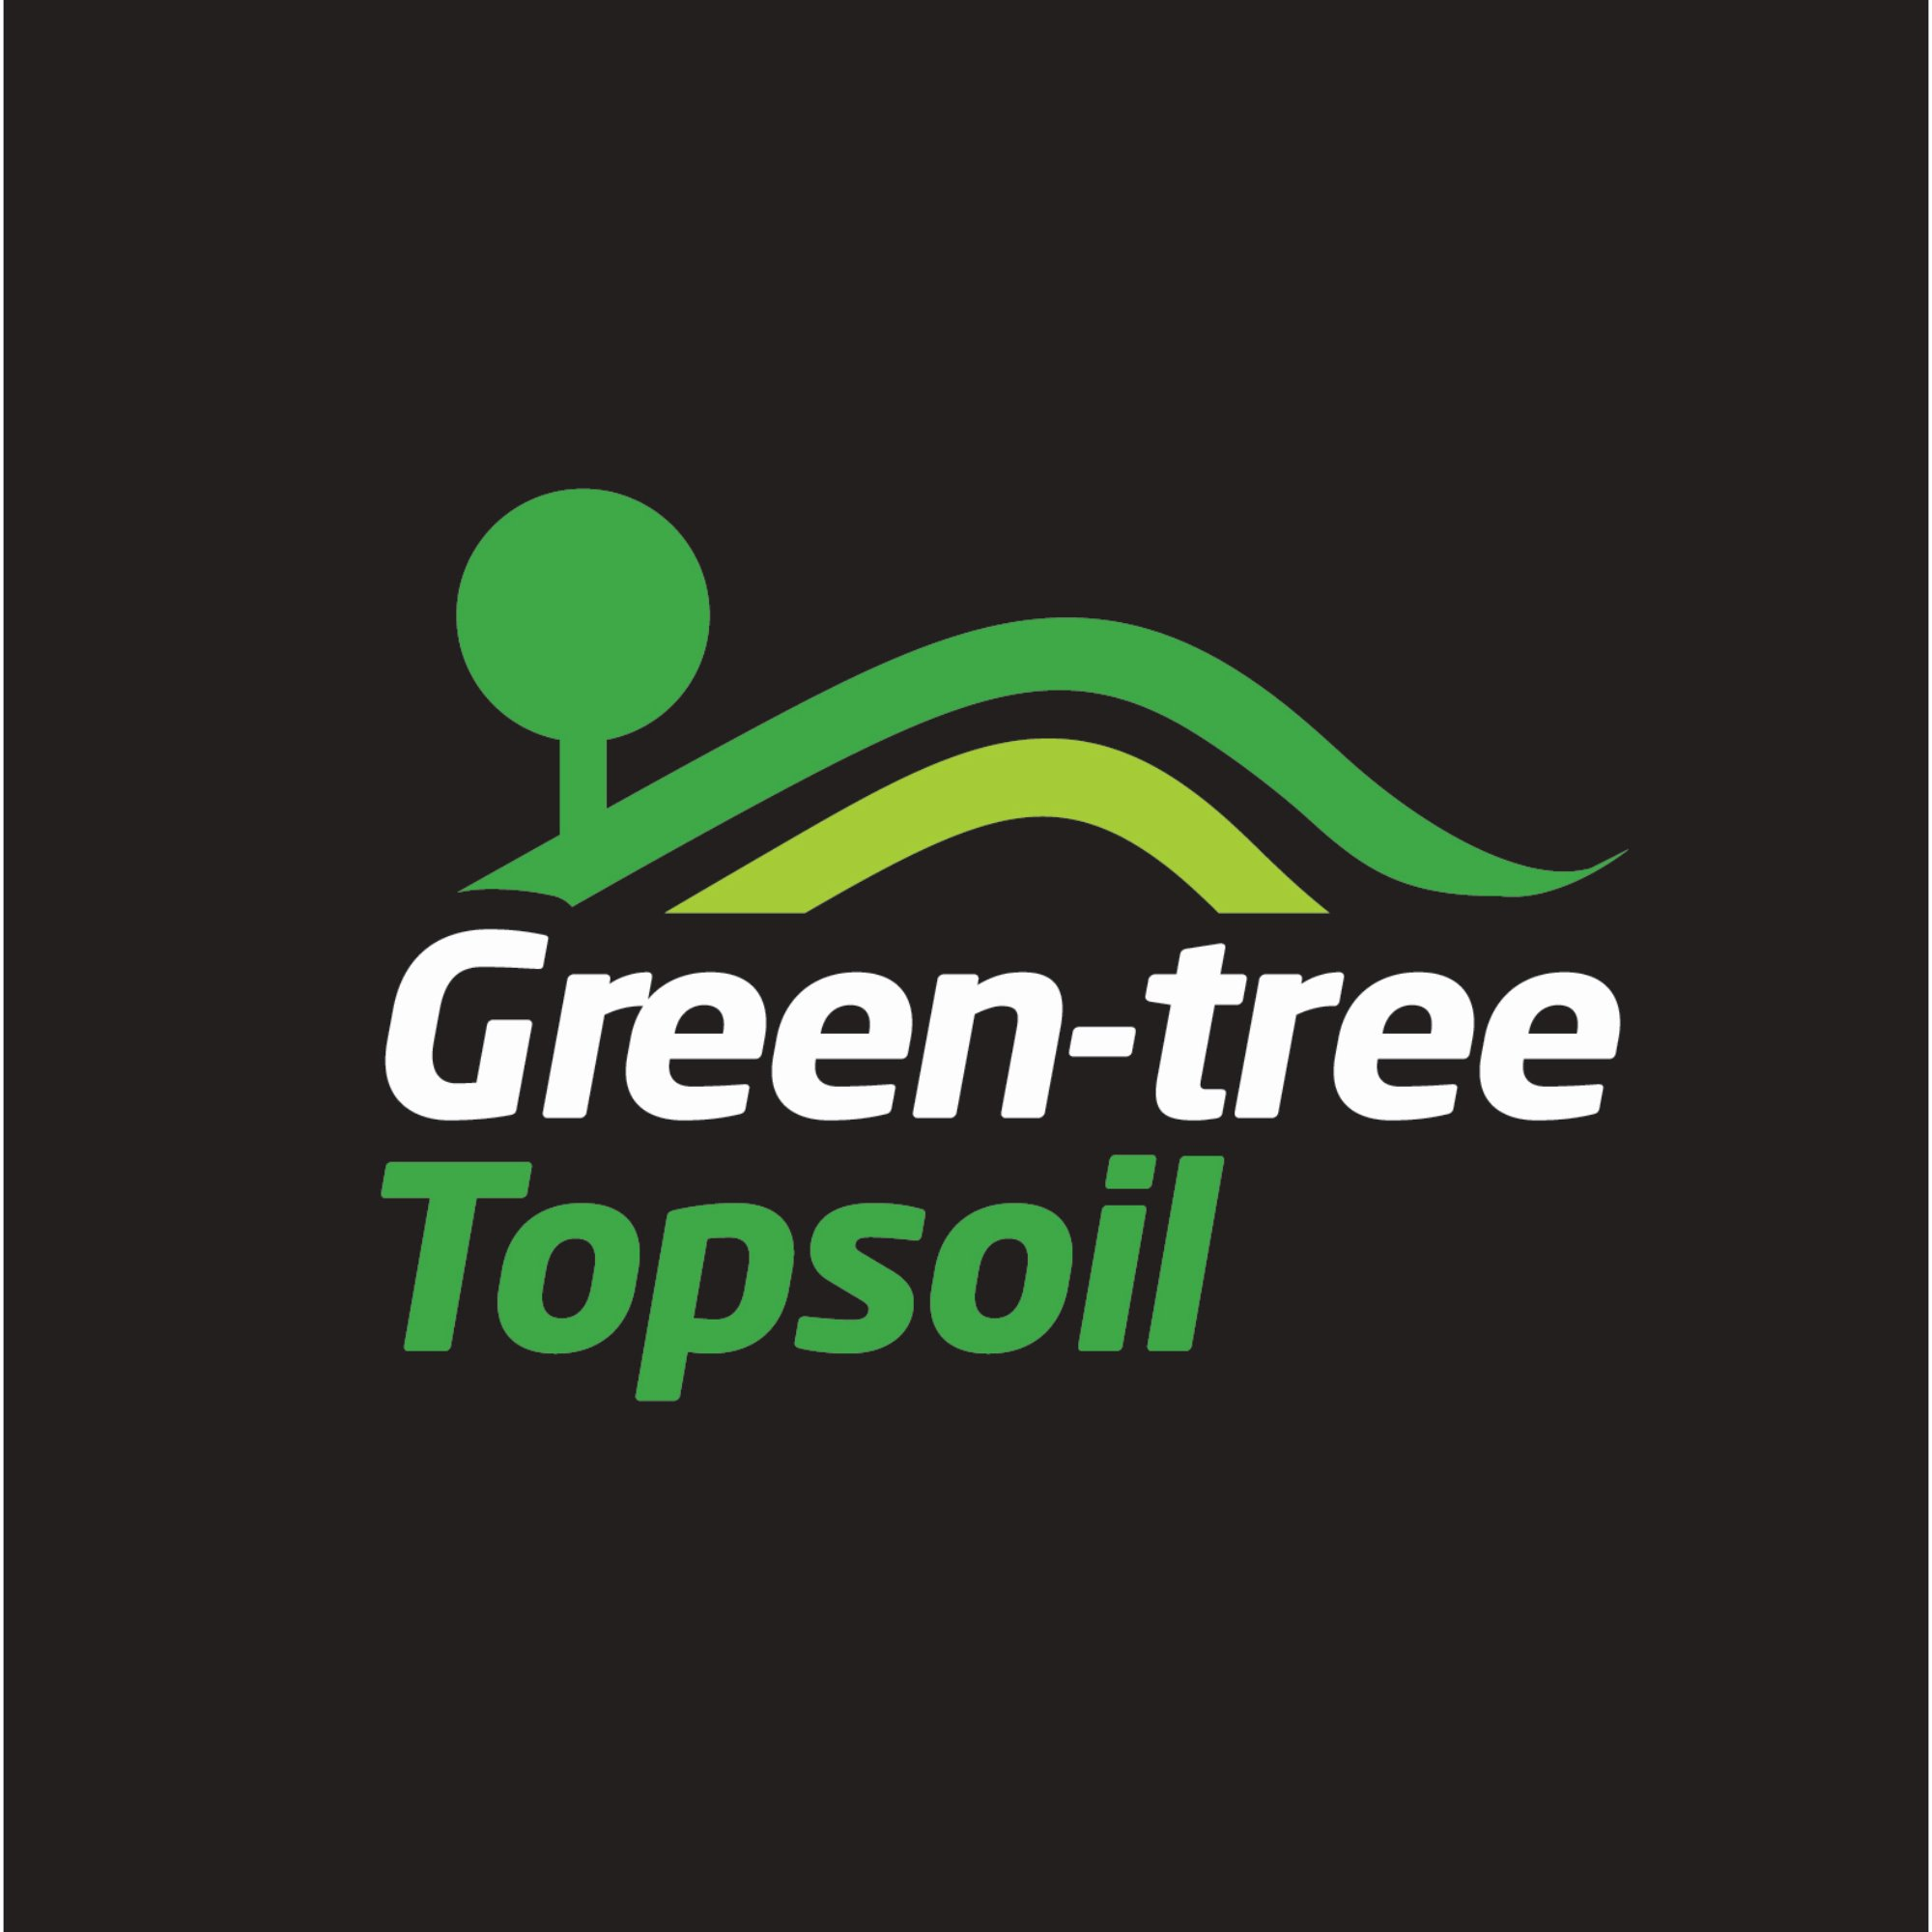 Green-tree Specialist Soils